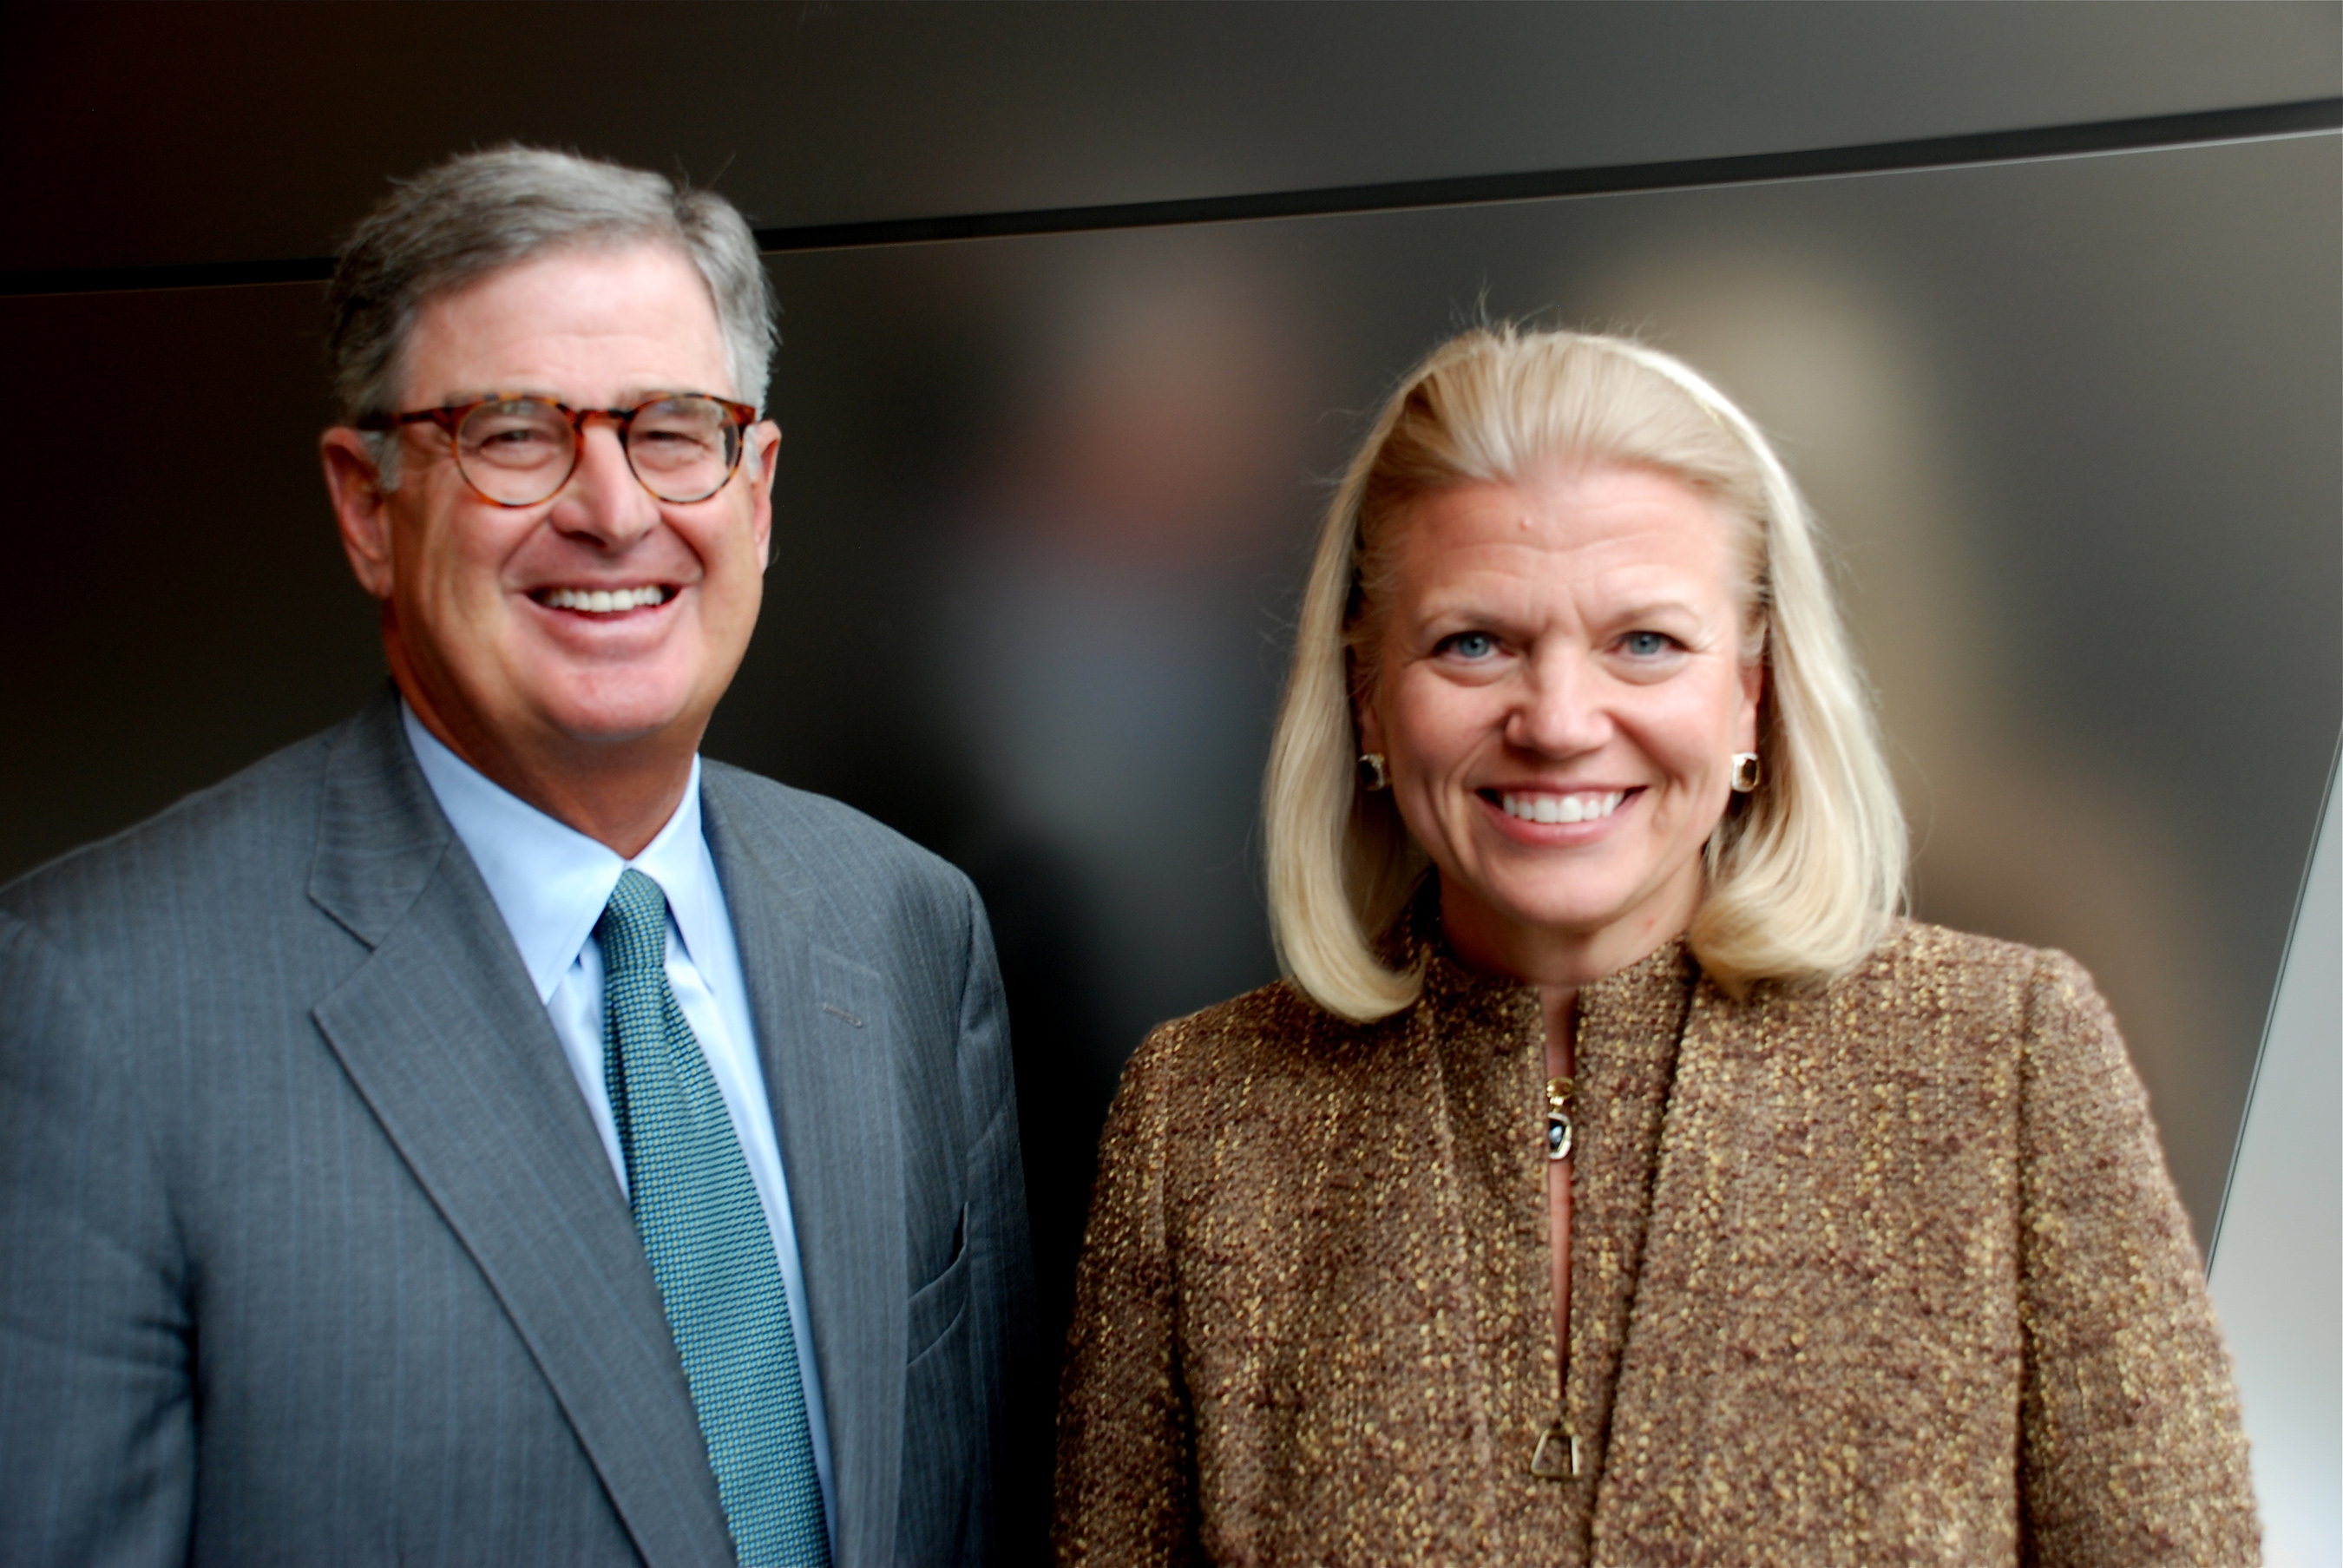 Current IBM CEO Ginni Rometty with her predecessor Sam Palmisano.